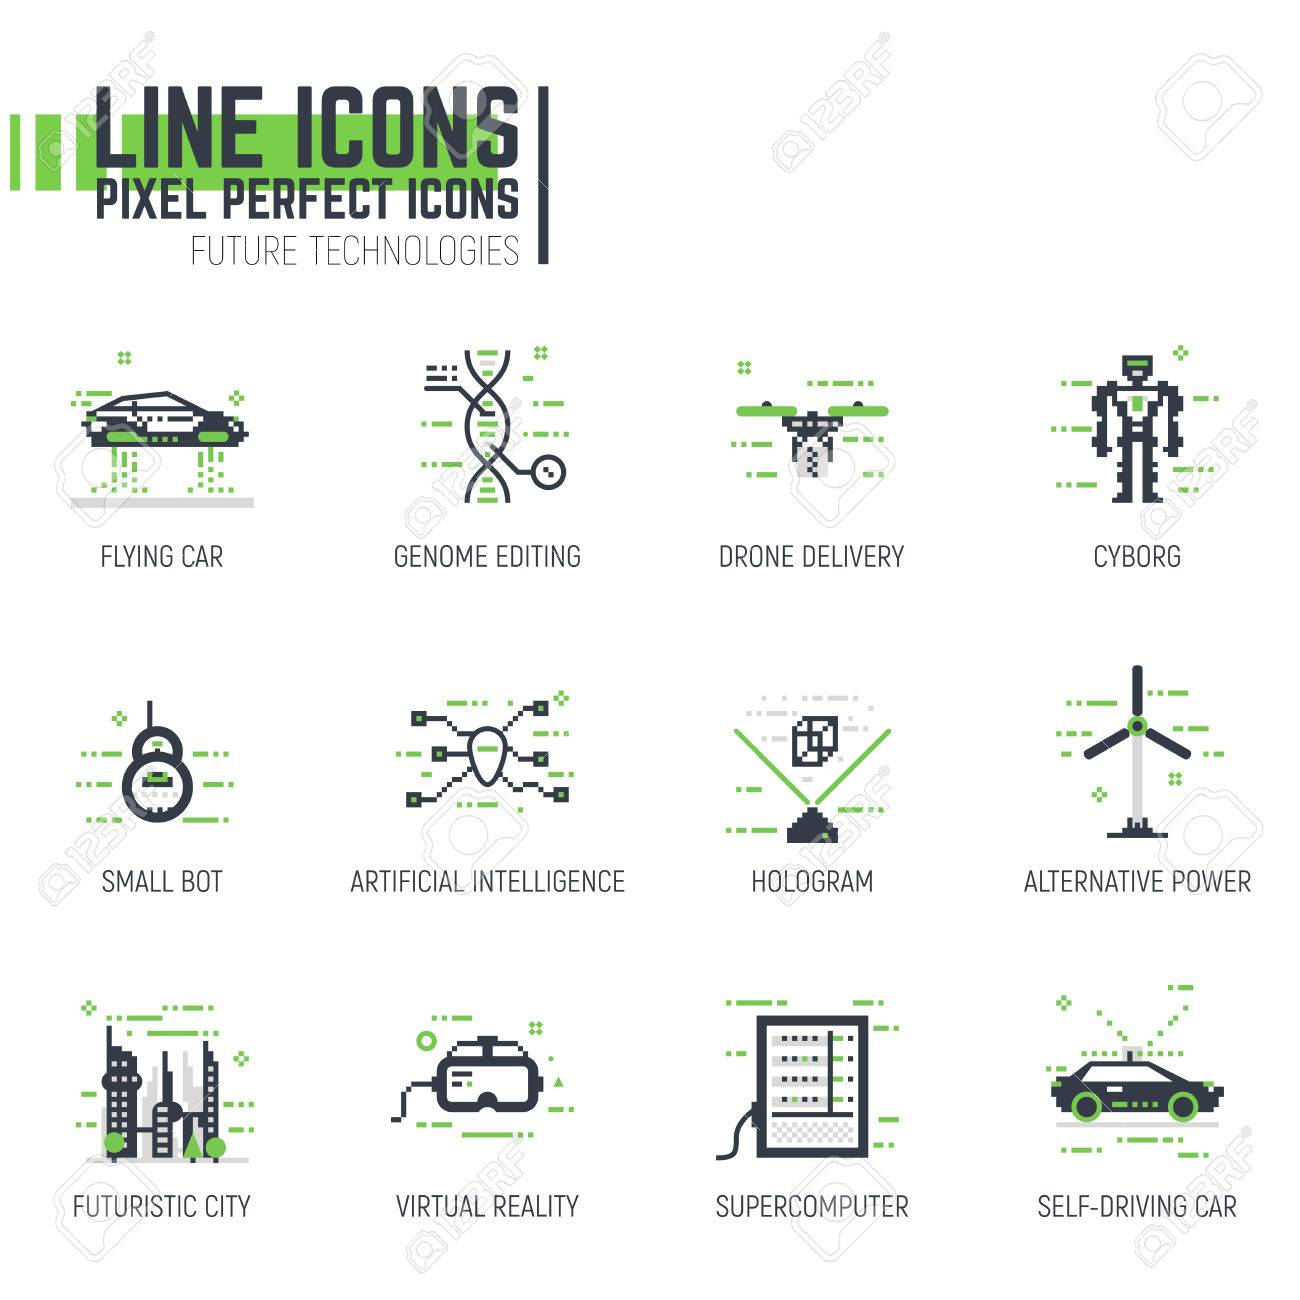 Set of pixel thick line style future icons. Technology and science items, cars and robots with futuristic tech. Machines of the future. - 67770351